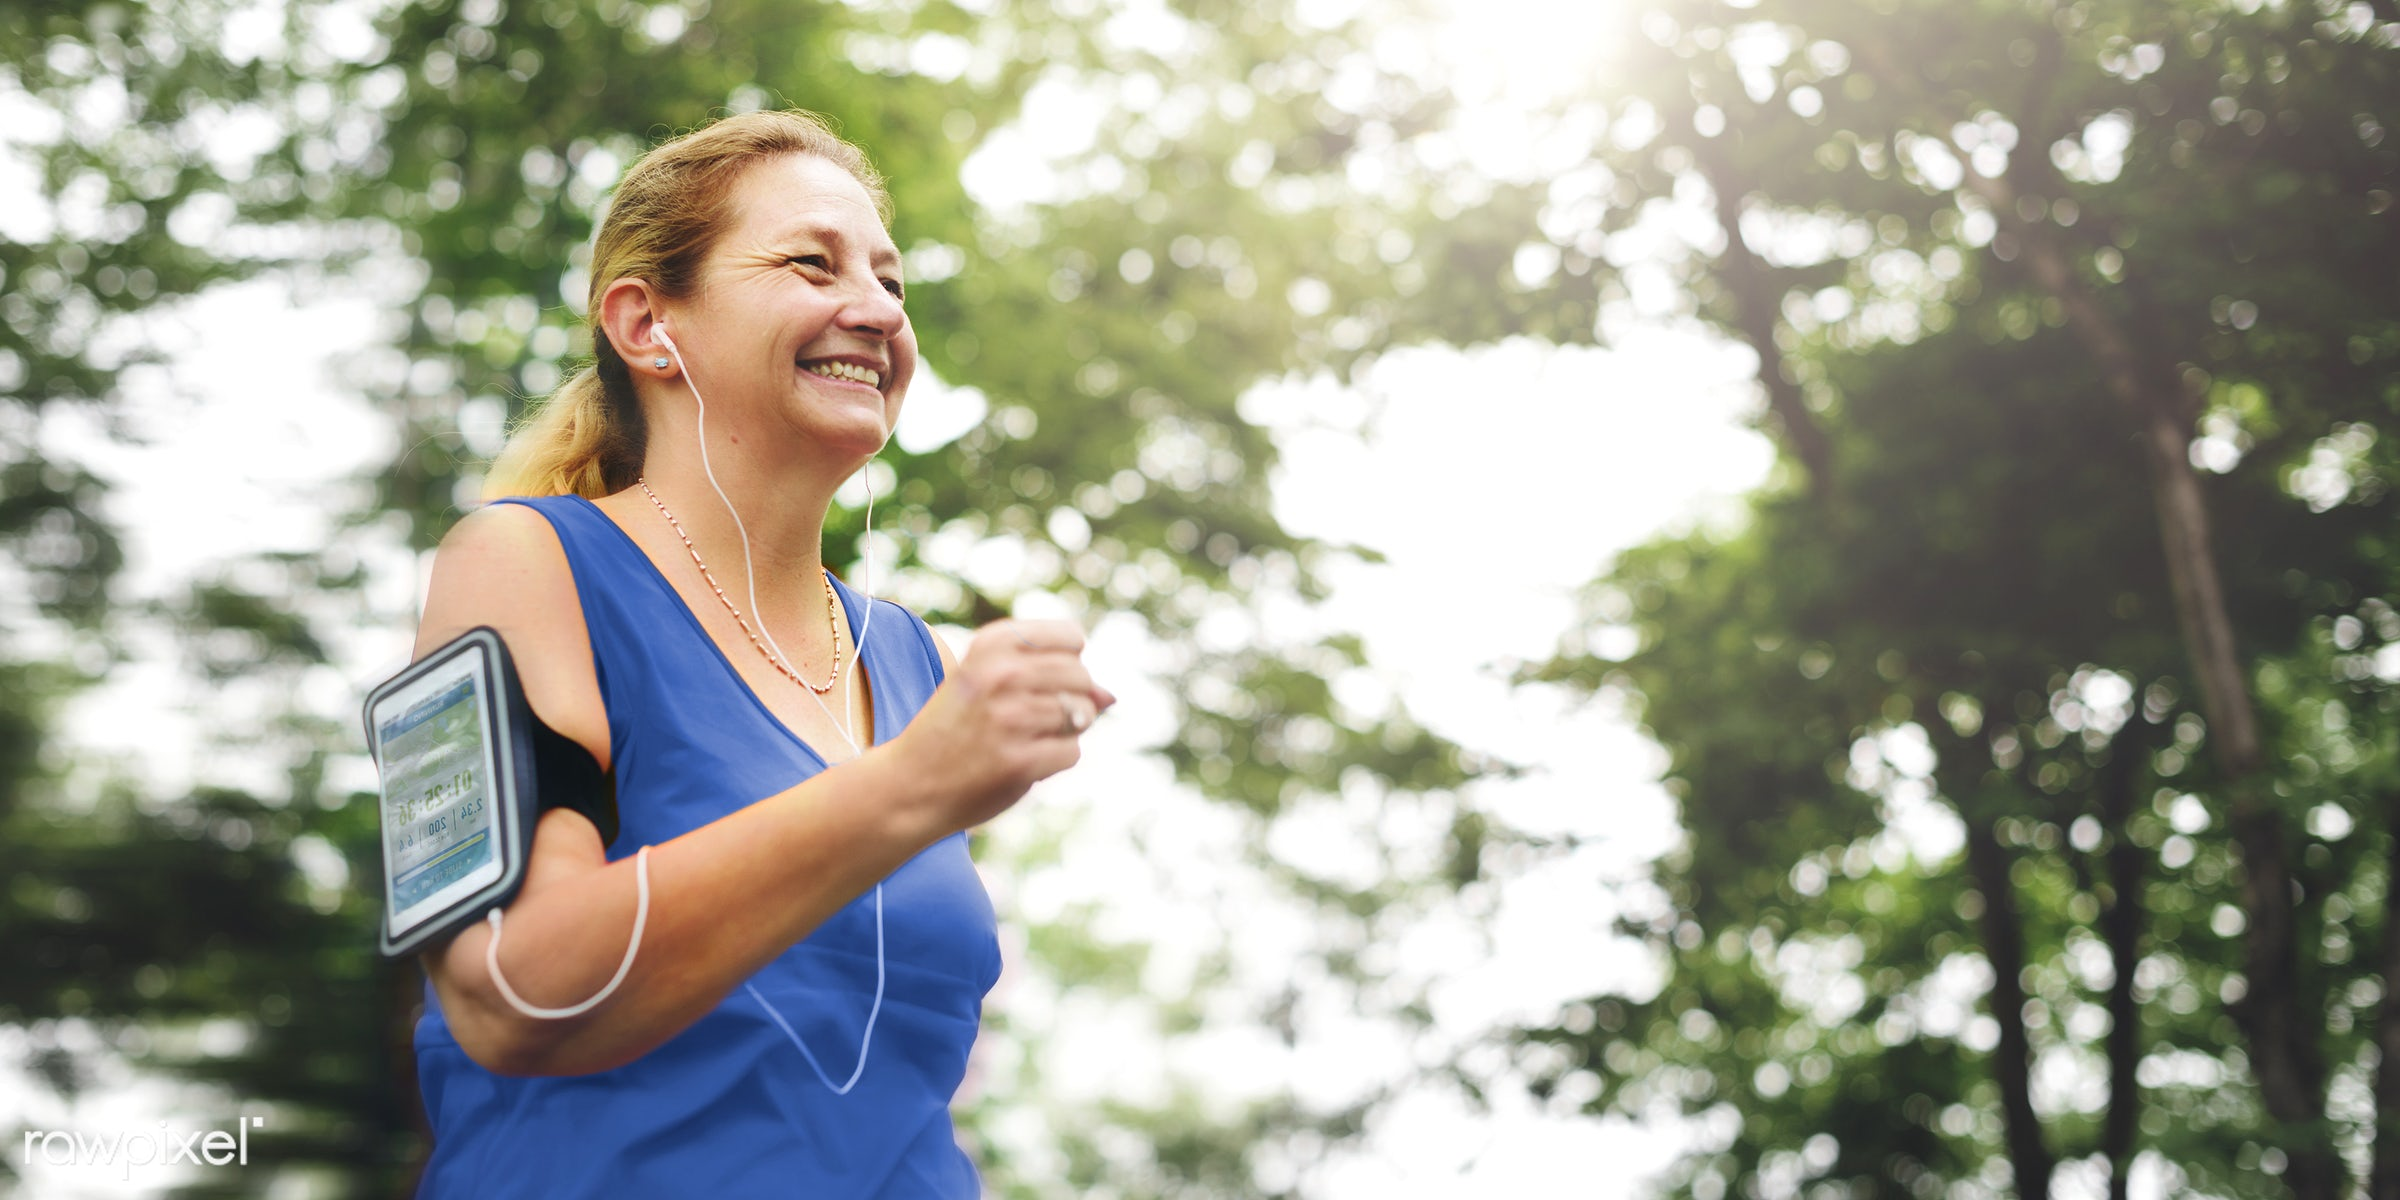 Mature woman jogging in the park - jogging, smiling, activity, cheerful, enjoyment, exercise, exercising, field, freshness,...